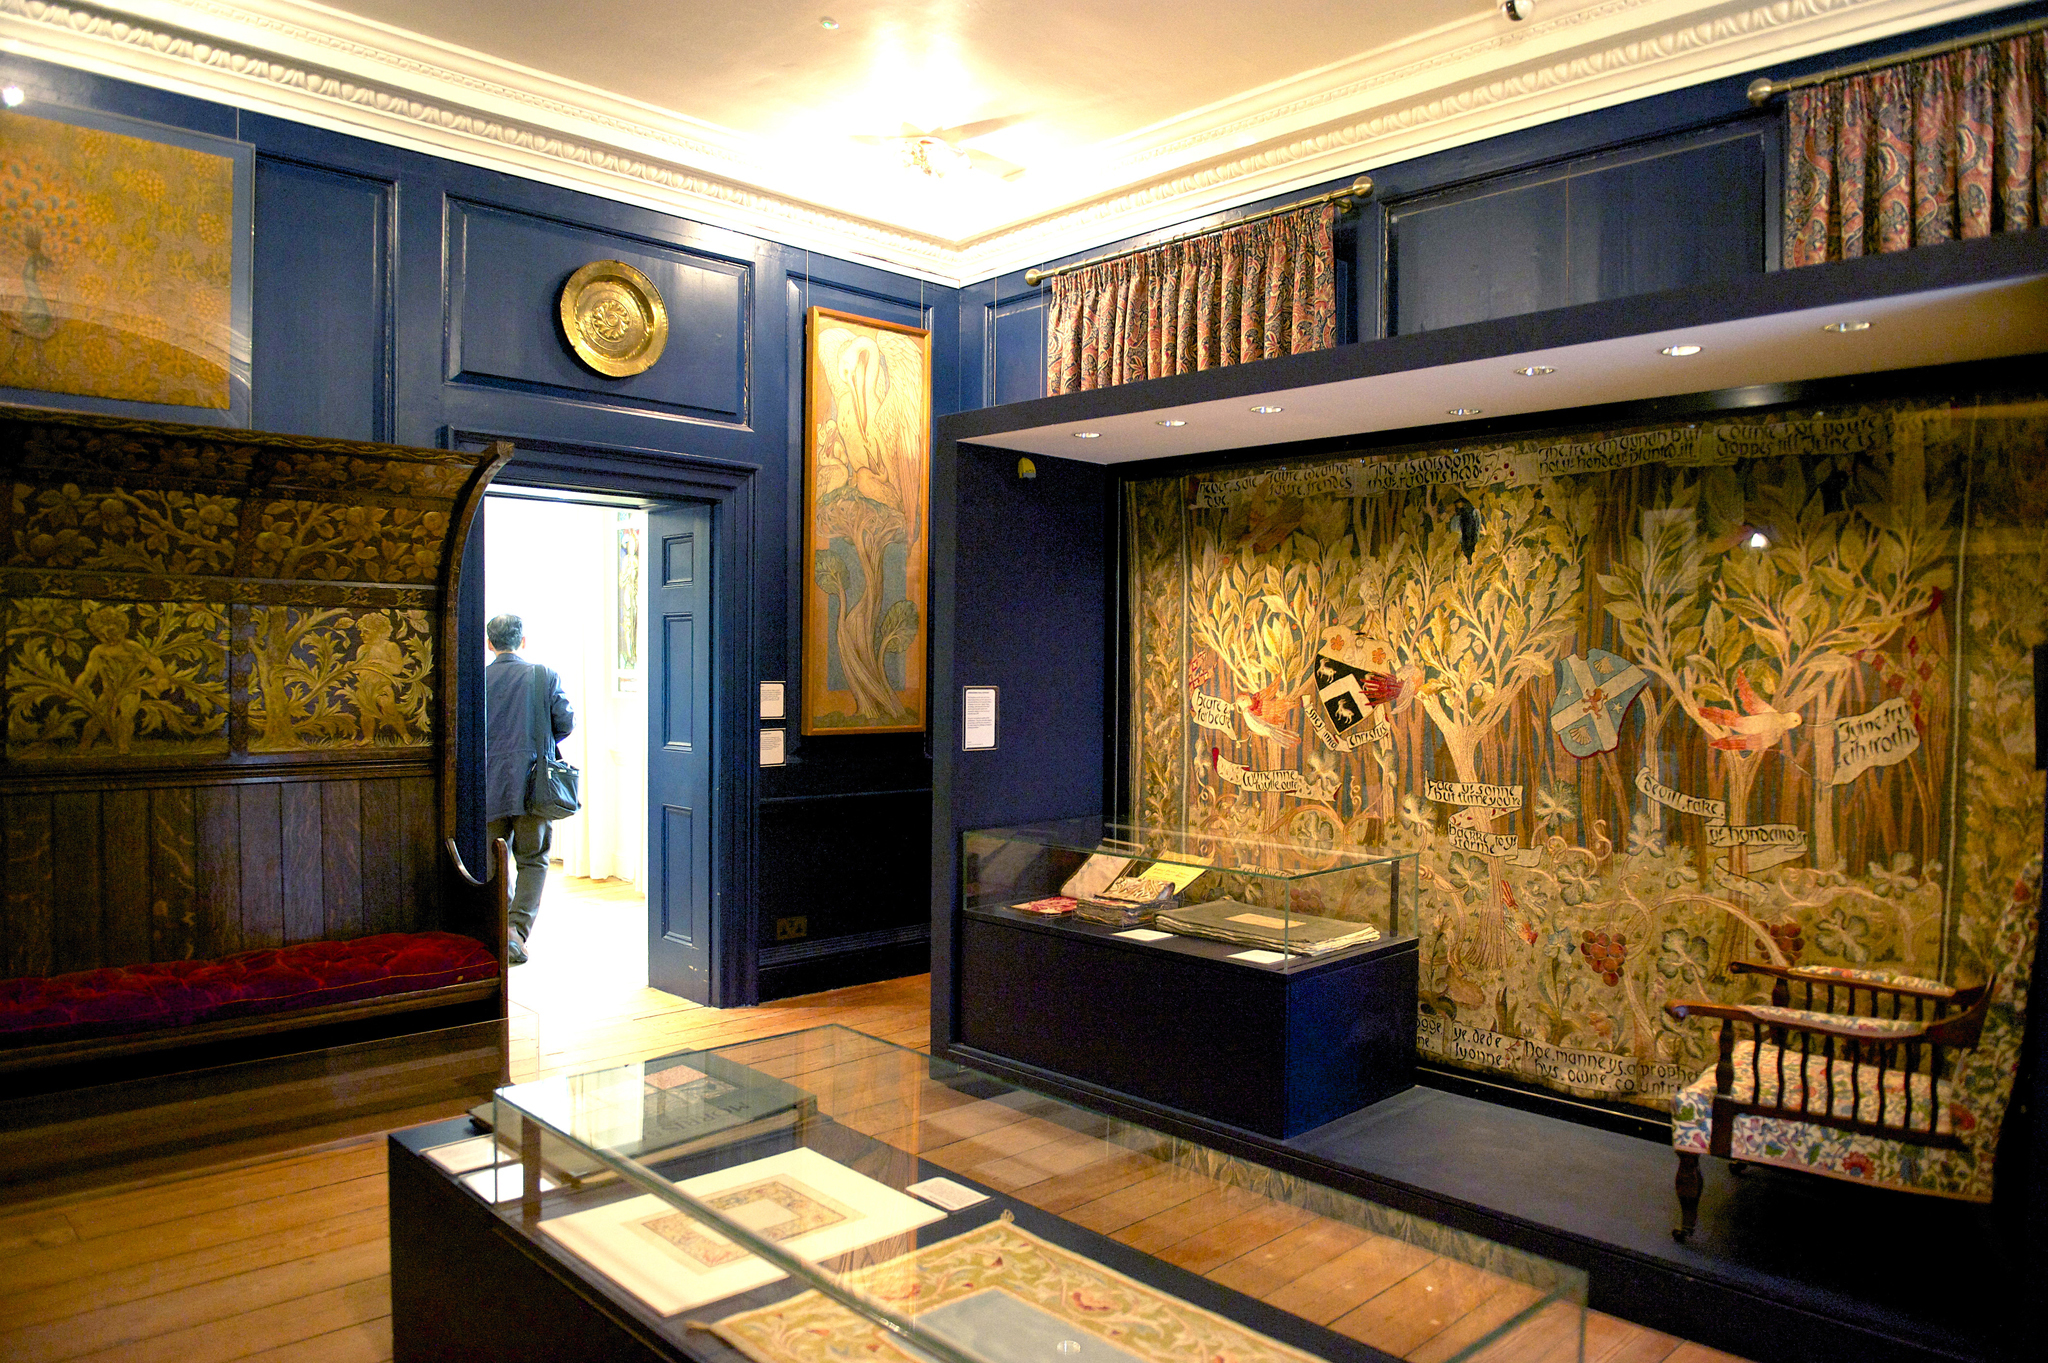 William morris gallery art in walthamstow london for Morris home